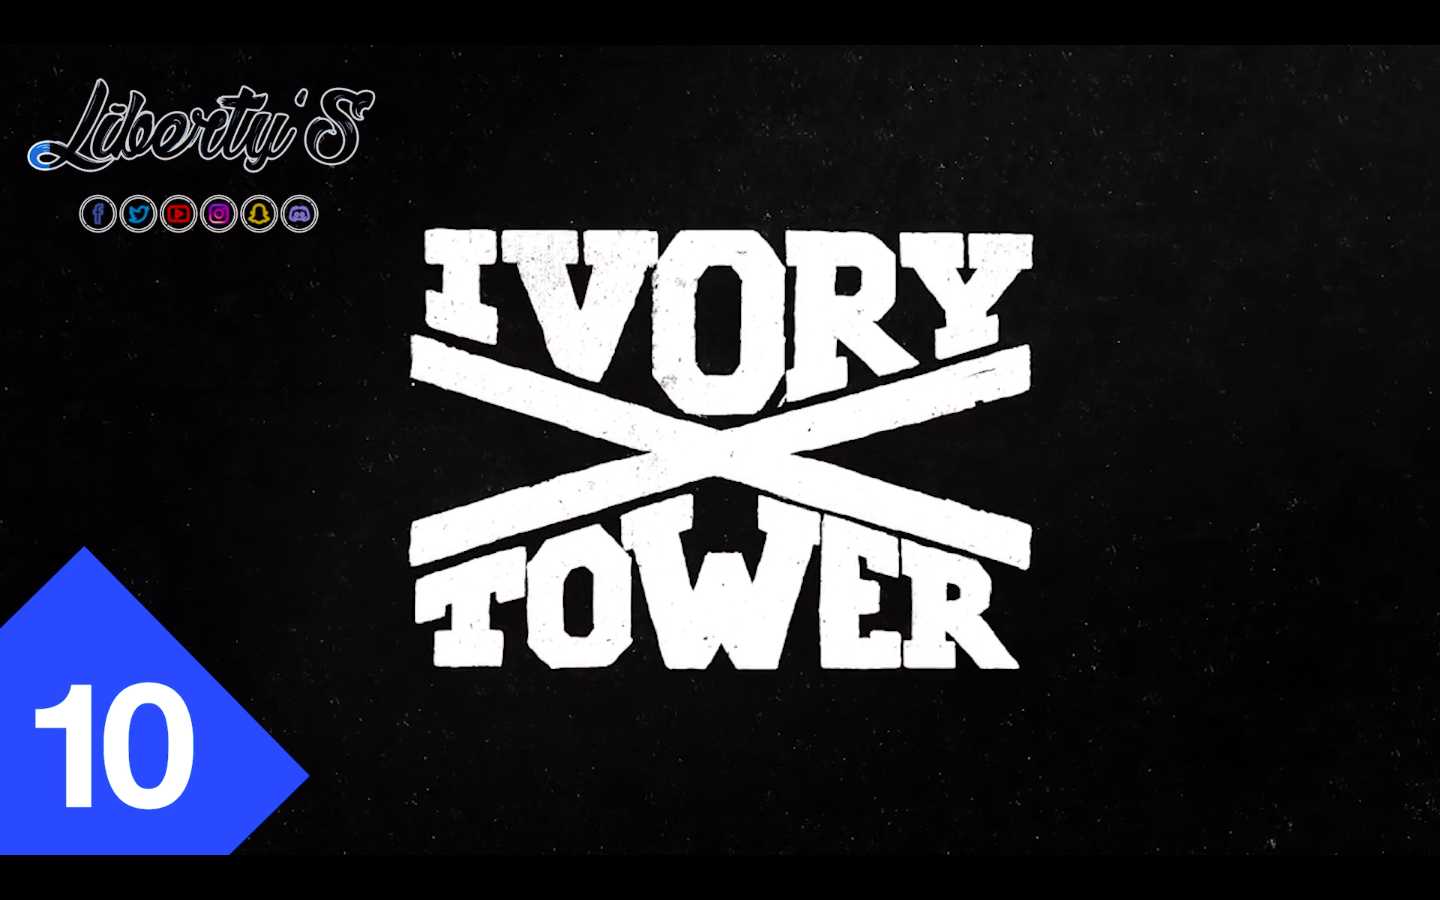 Top 10 Studios - 10 Ivory Tower